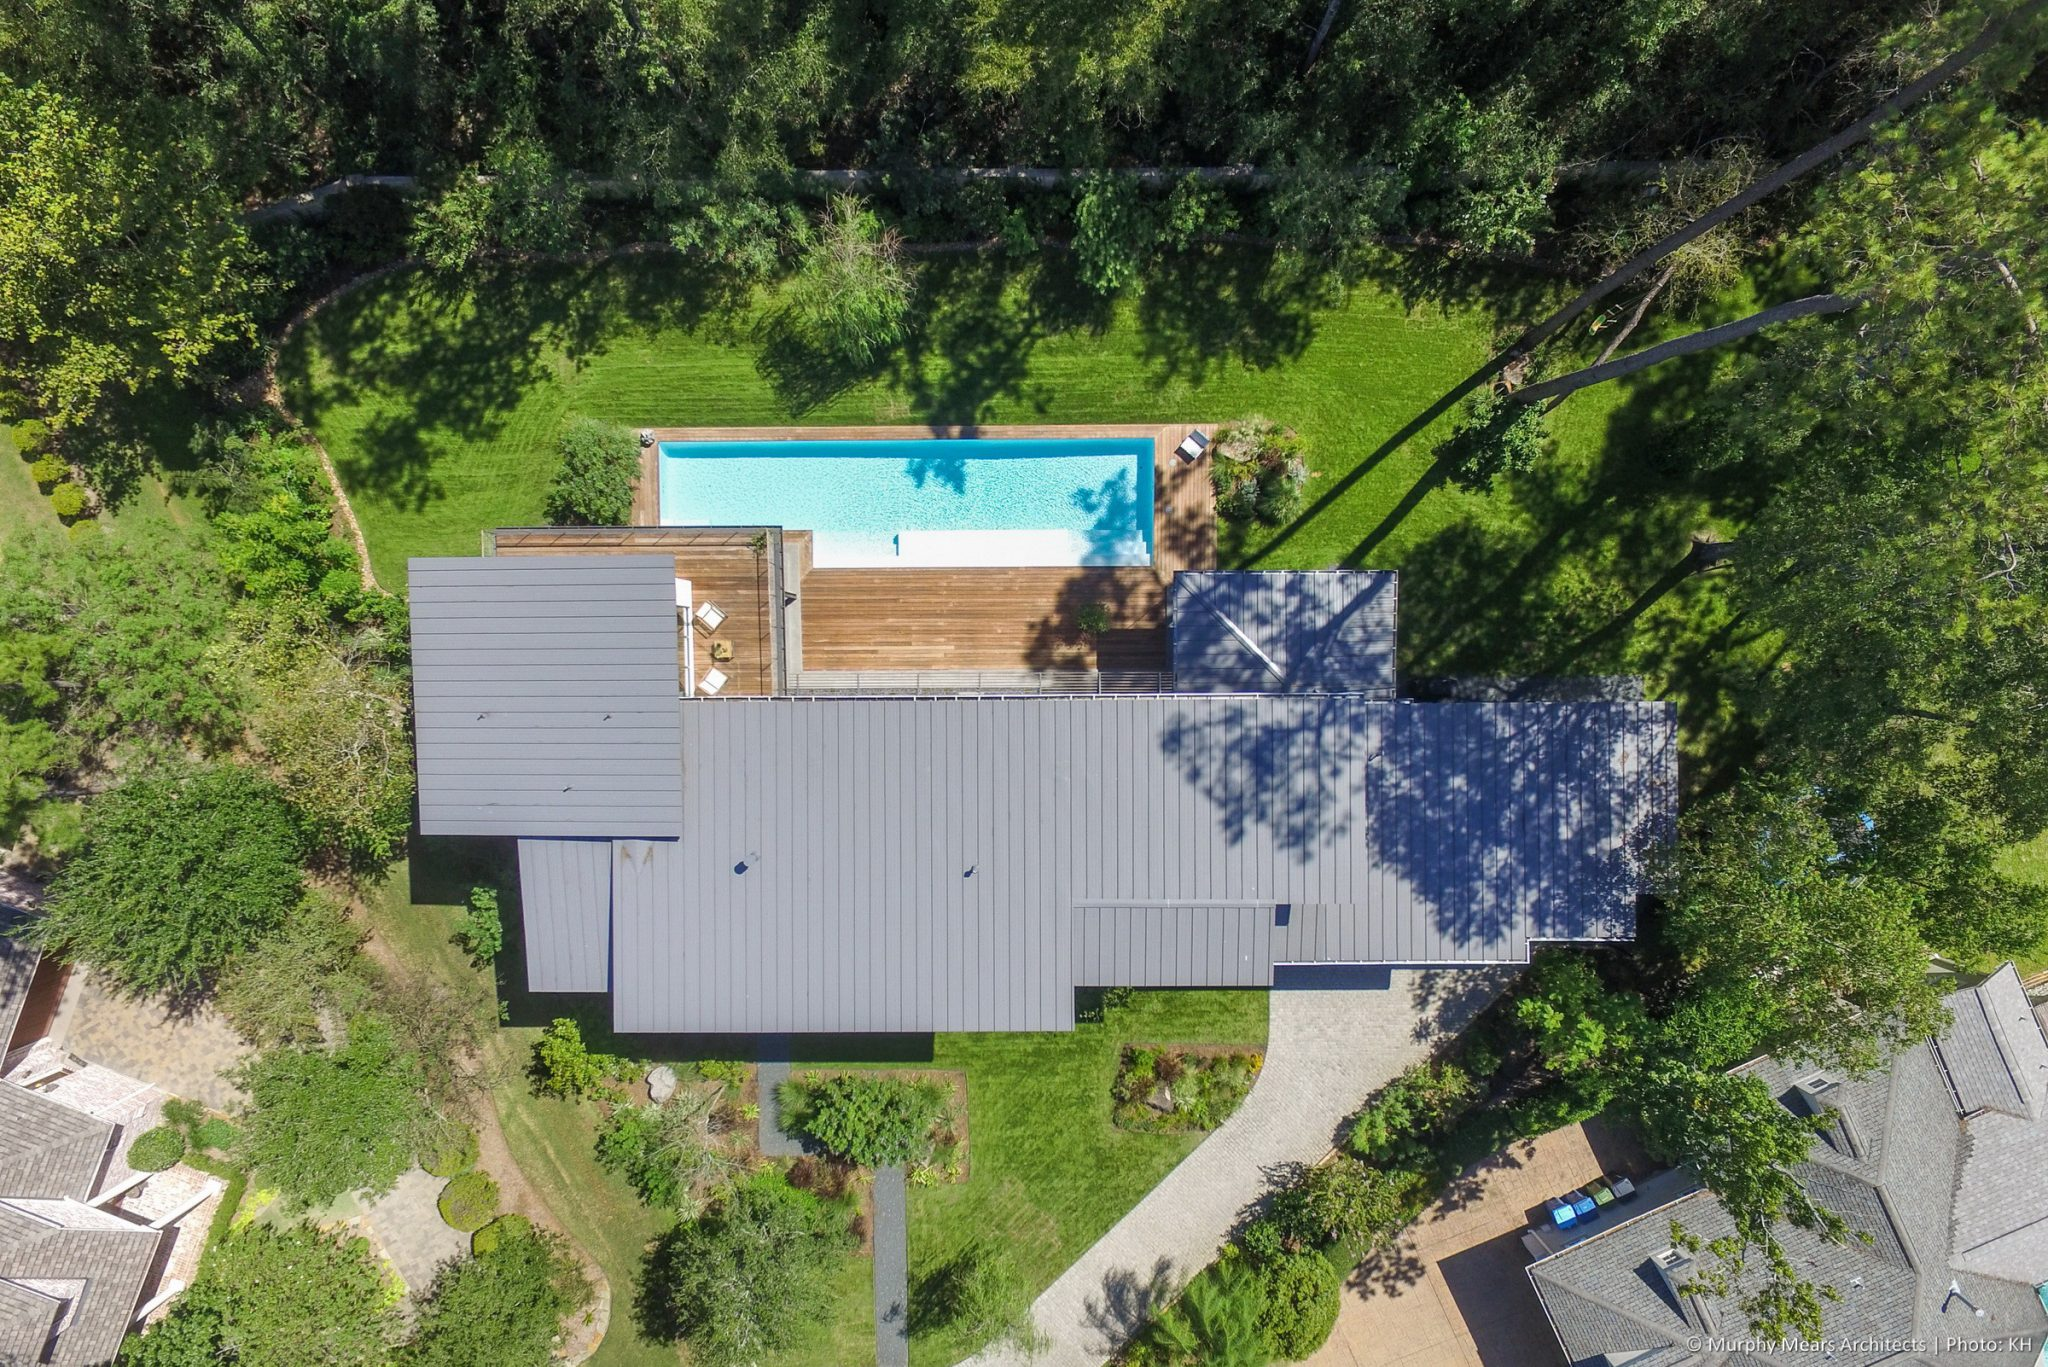 Carlton Woods Residence - Standing seam metal roof, oriented south for solar panels.